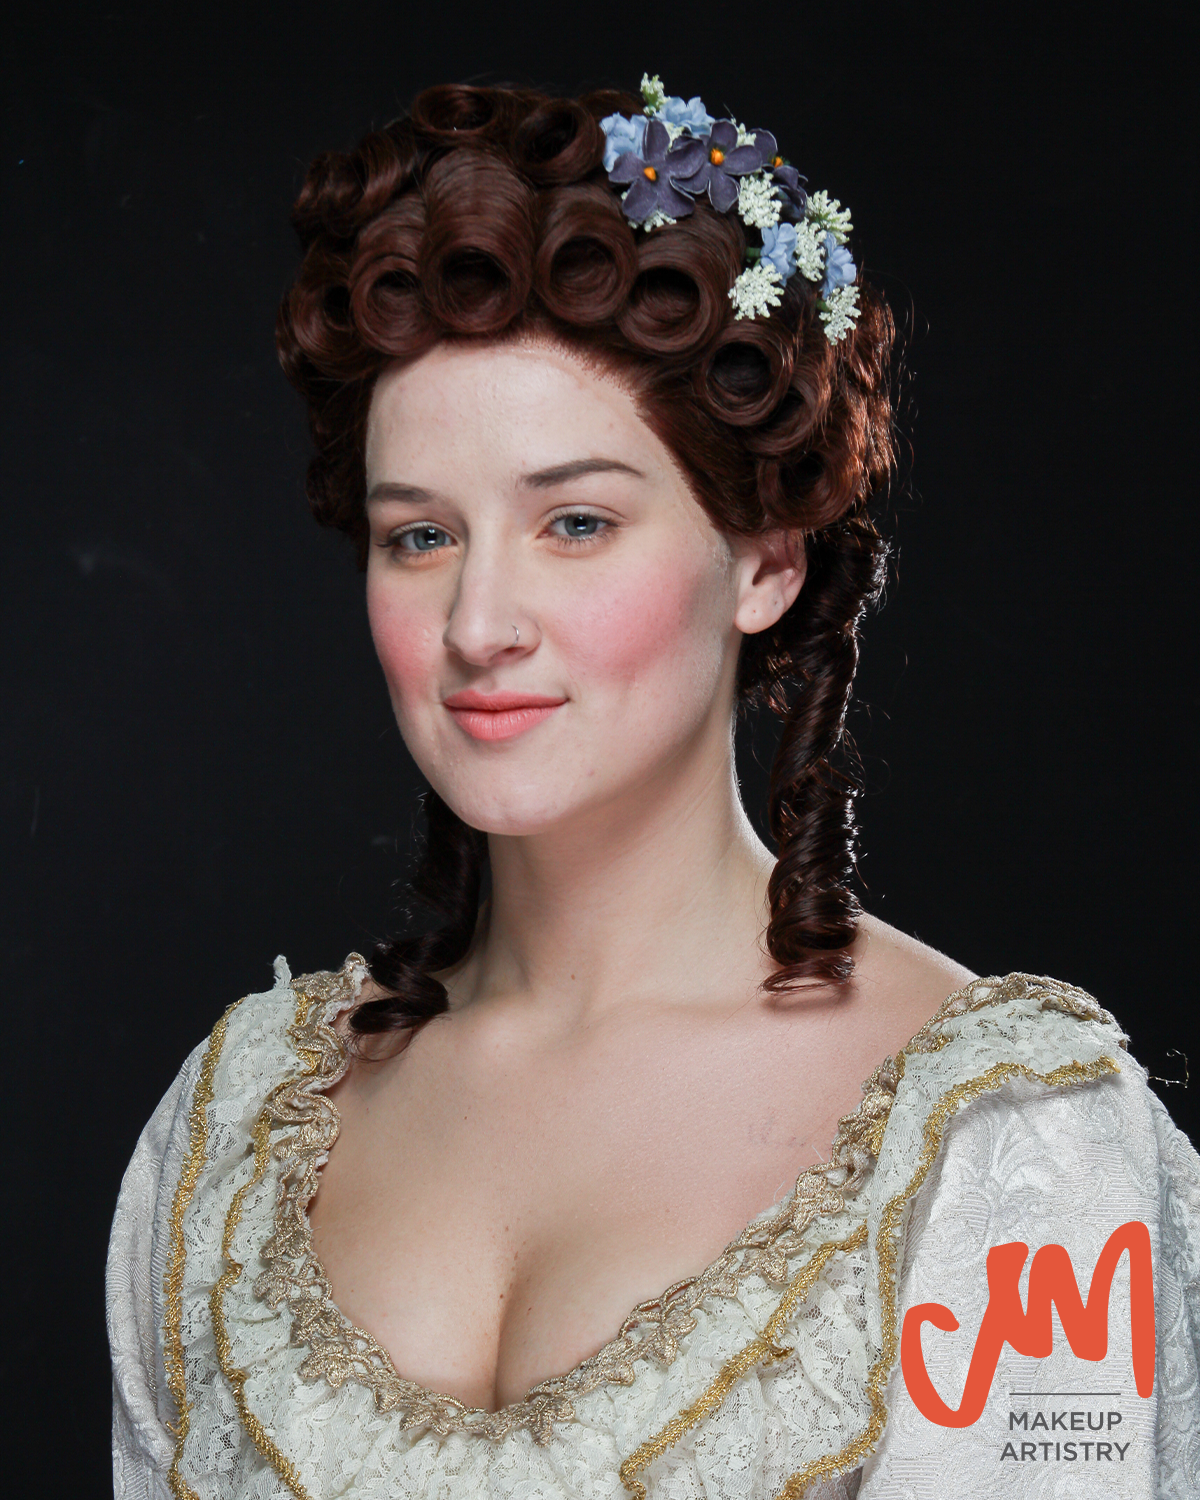 madame de pampadore, wig stylist, hair stylist, wigs, wig maker, period hairstyle, Jeanne Antoinette Poisson, Marquise de Pompadour, french hairstyle